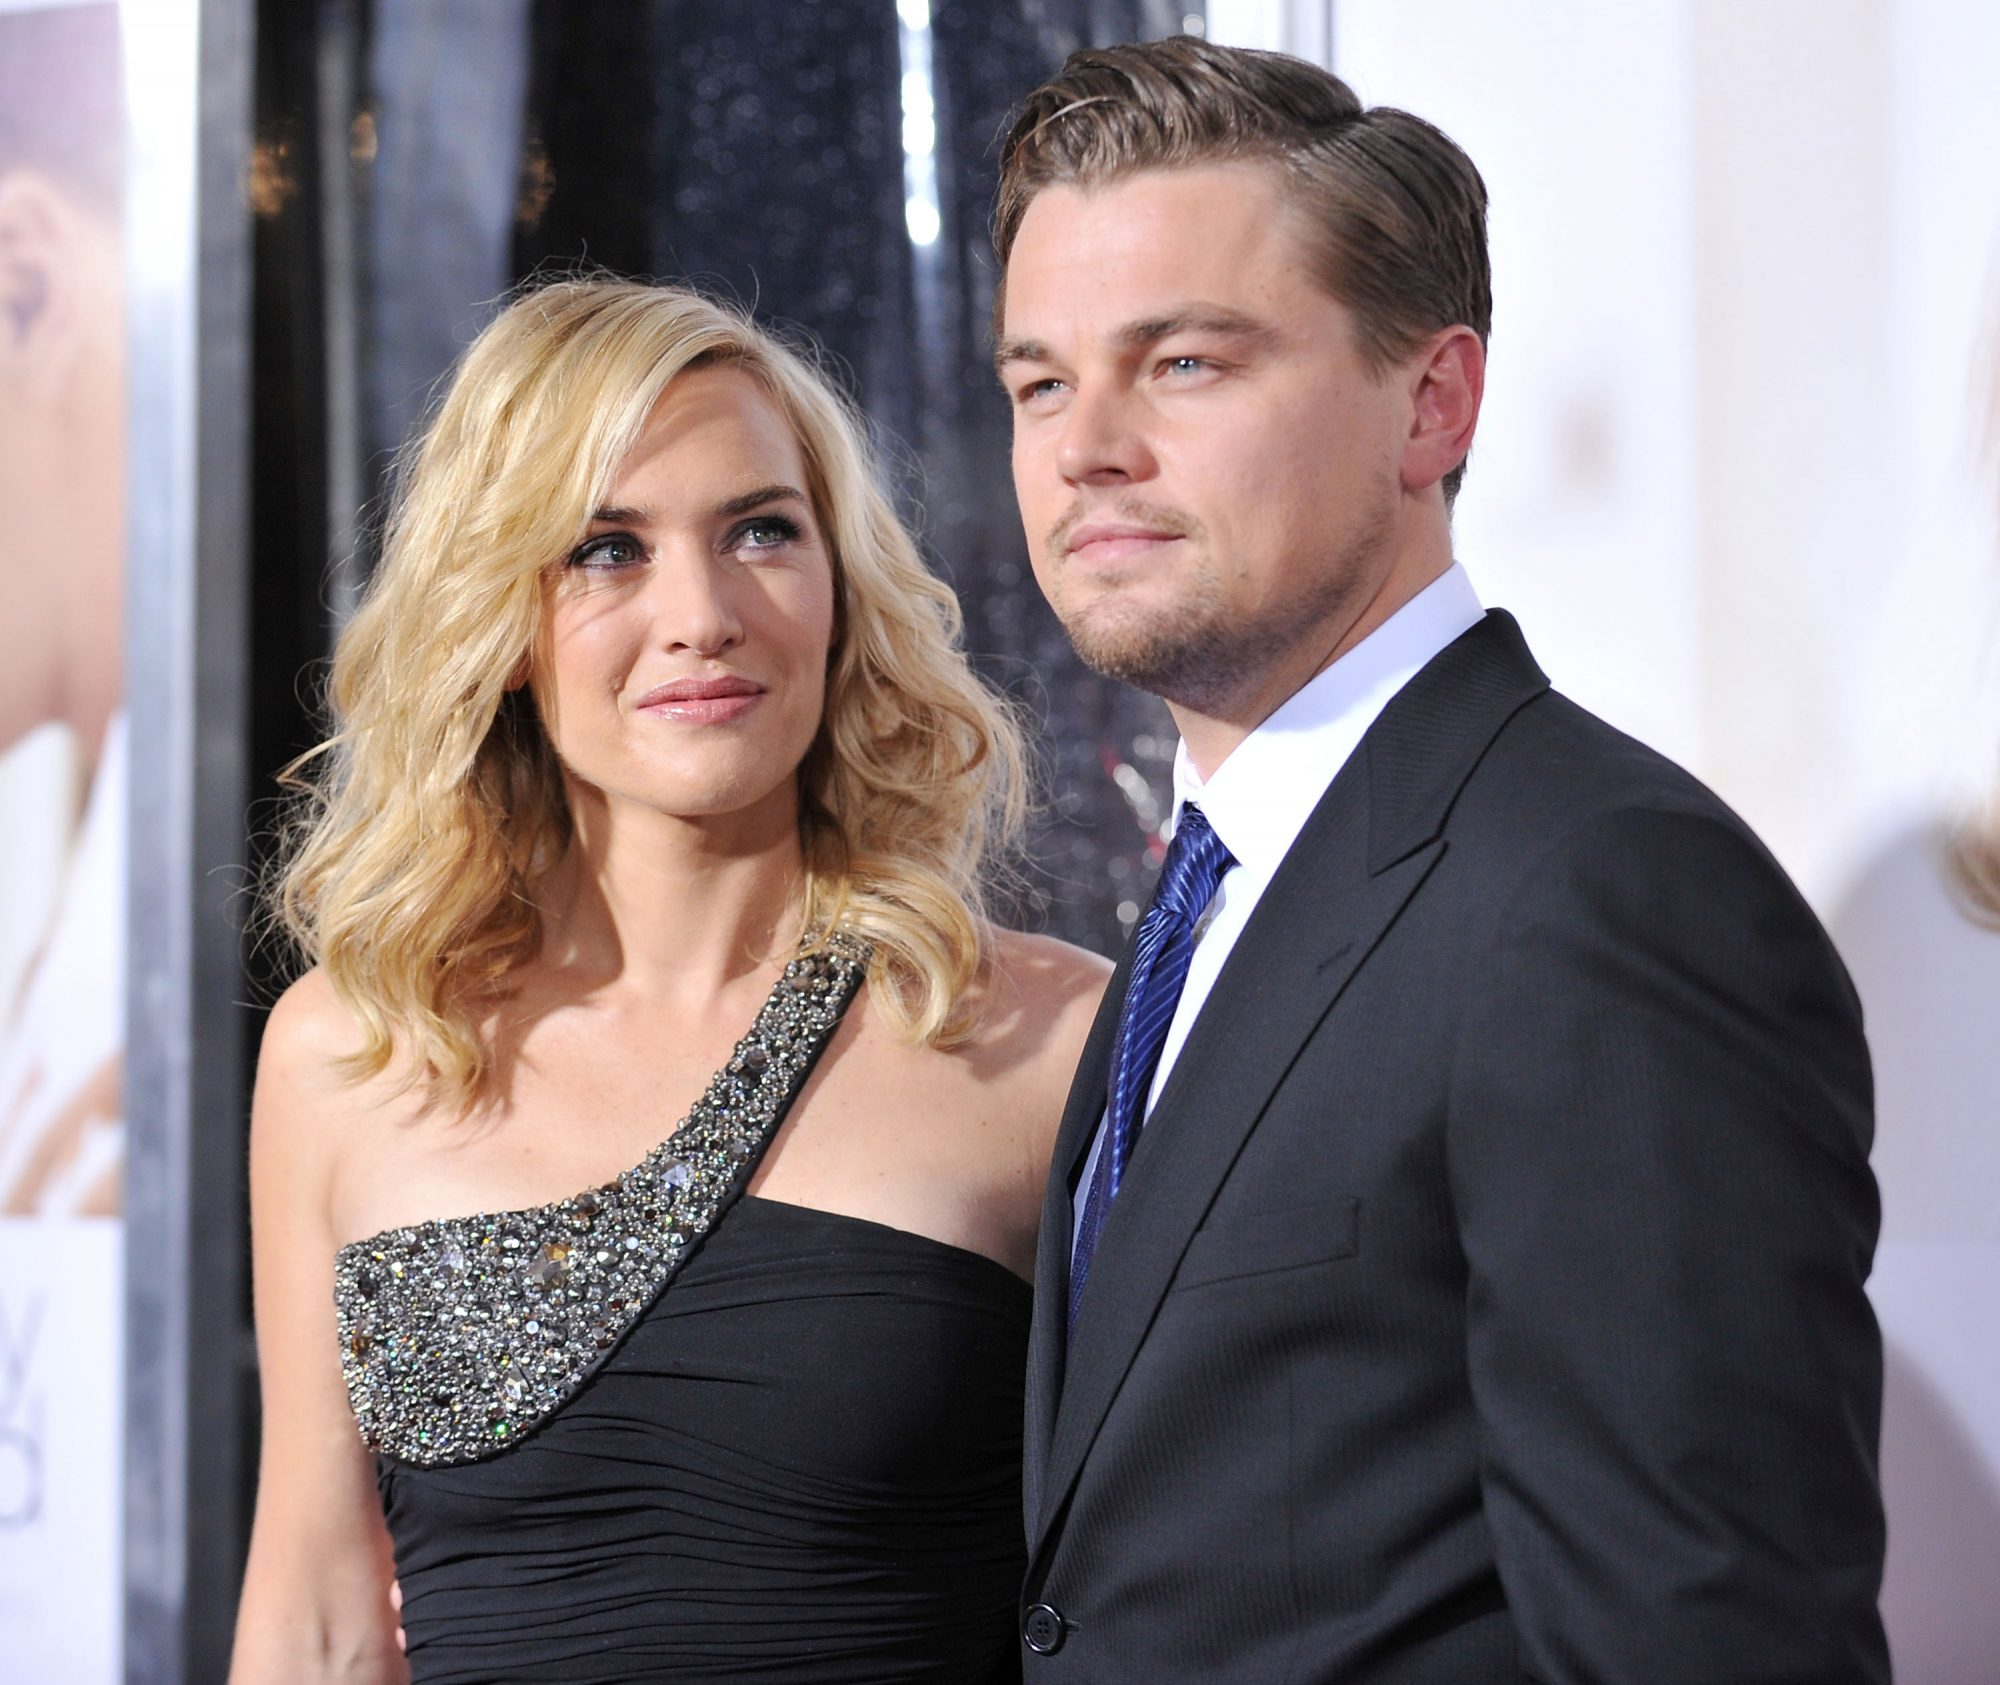 12 Photos That Prove Kate Winslet and Leonardo DiCaprio Are the Cutest BFFs in Hollywood